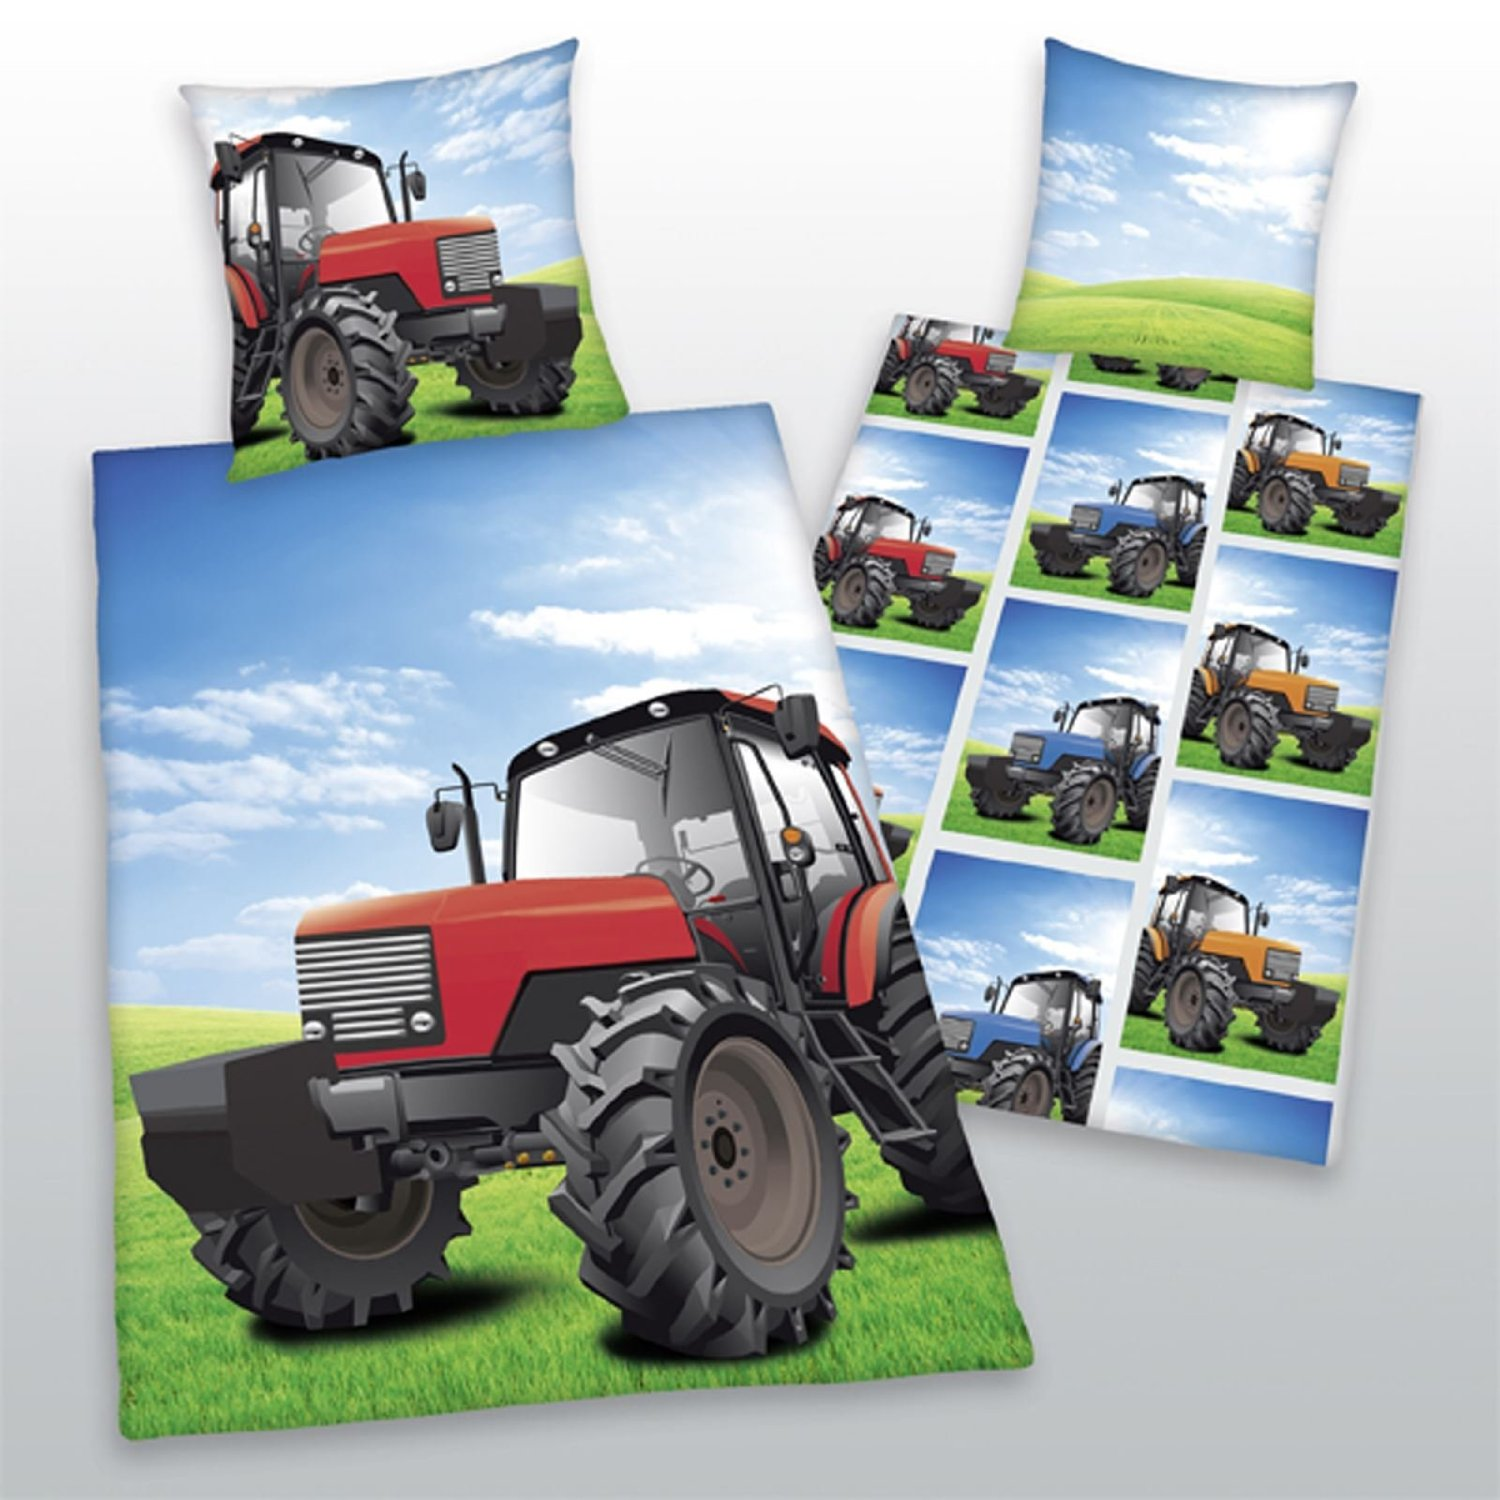 Very best Tractor Theme Bedding for Kids From Baby's Crib to Toddler On Up BA16